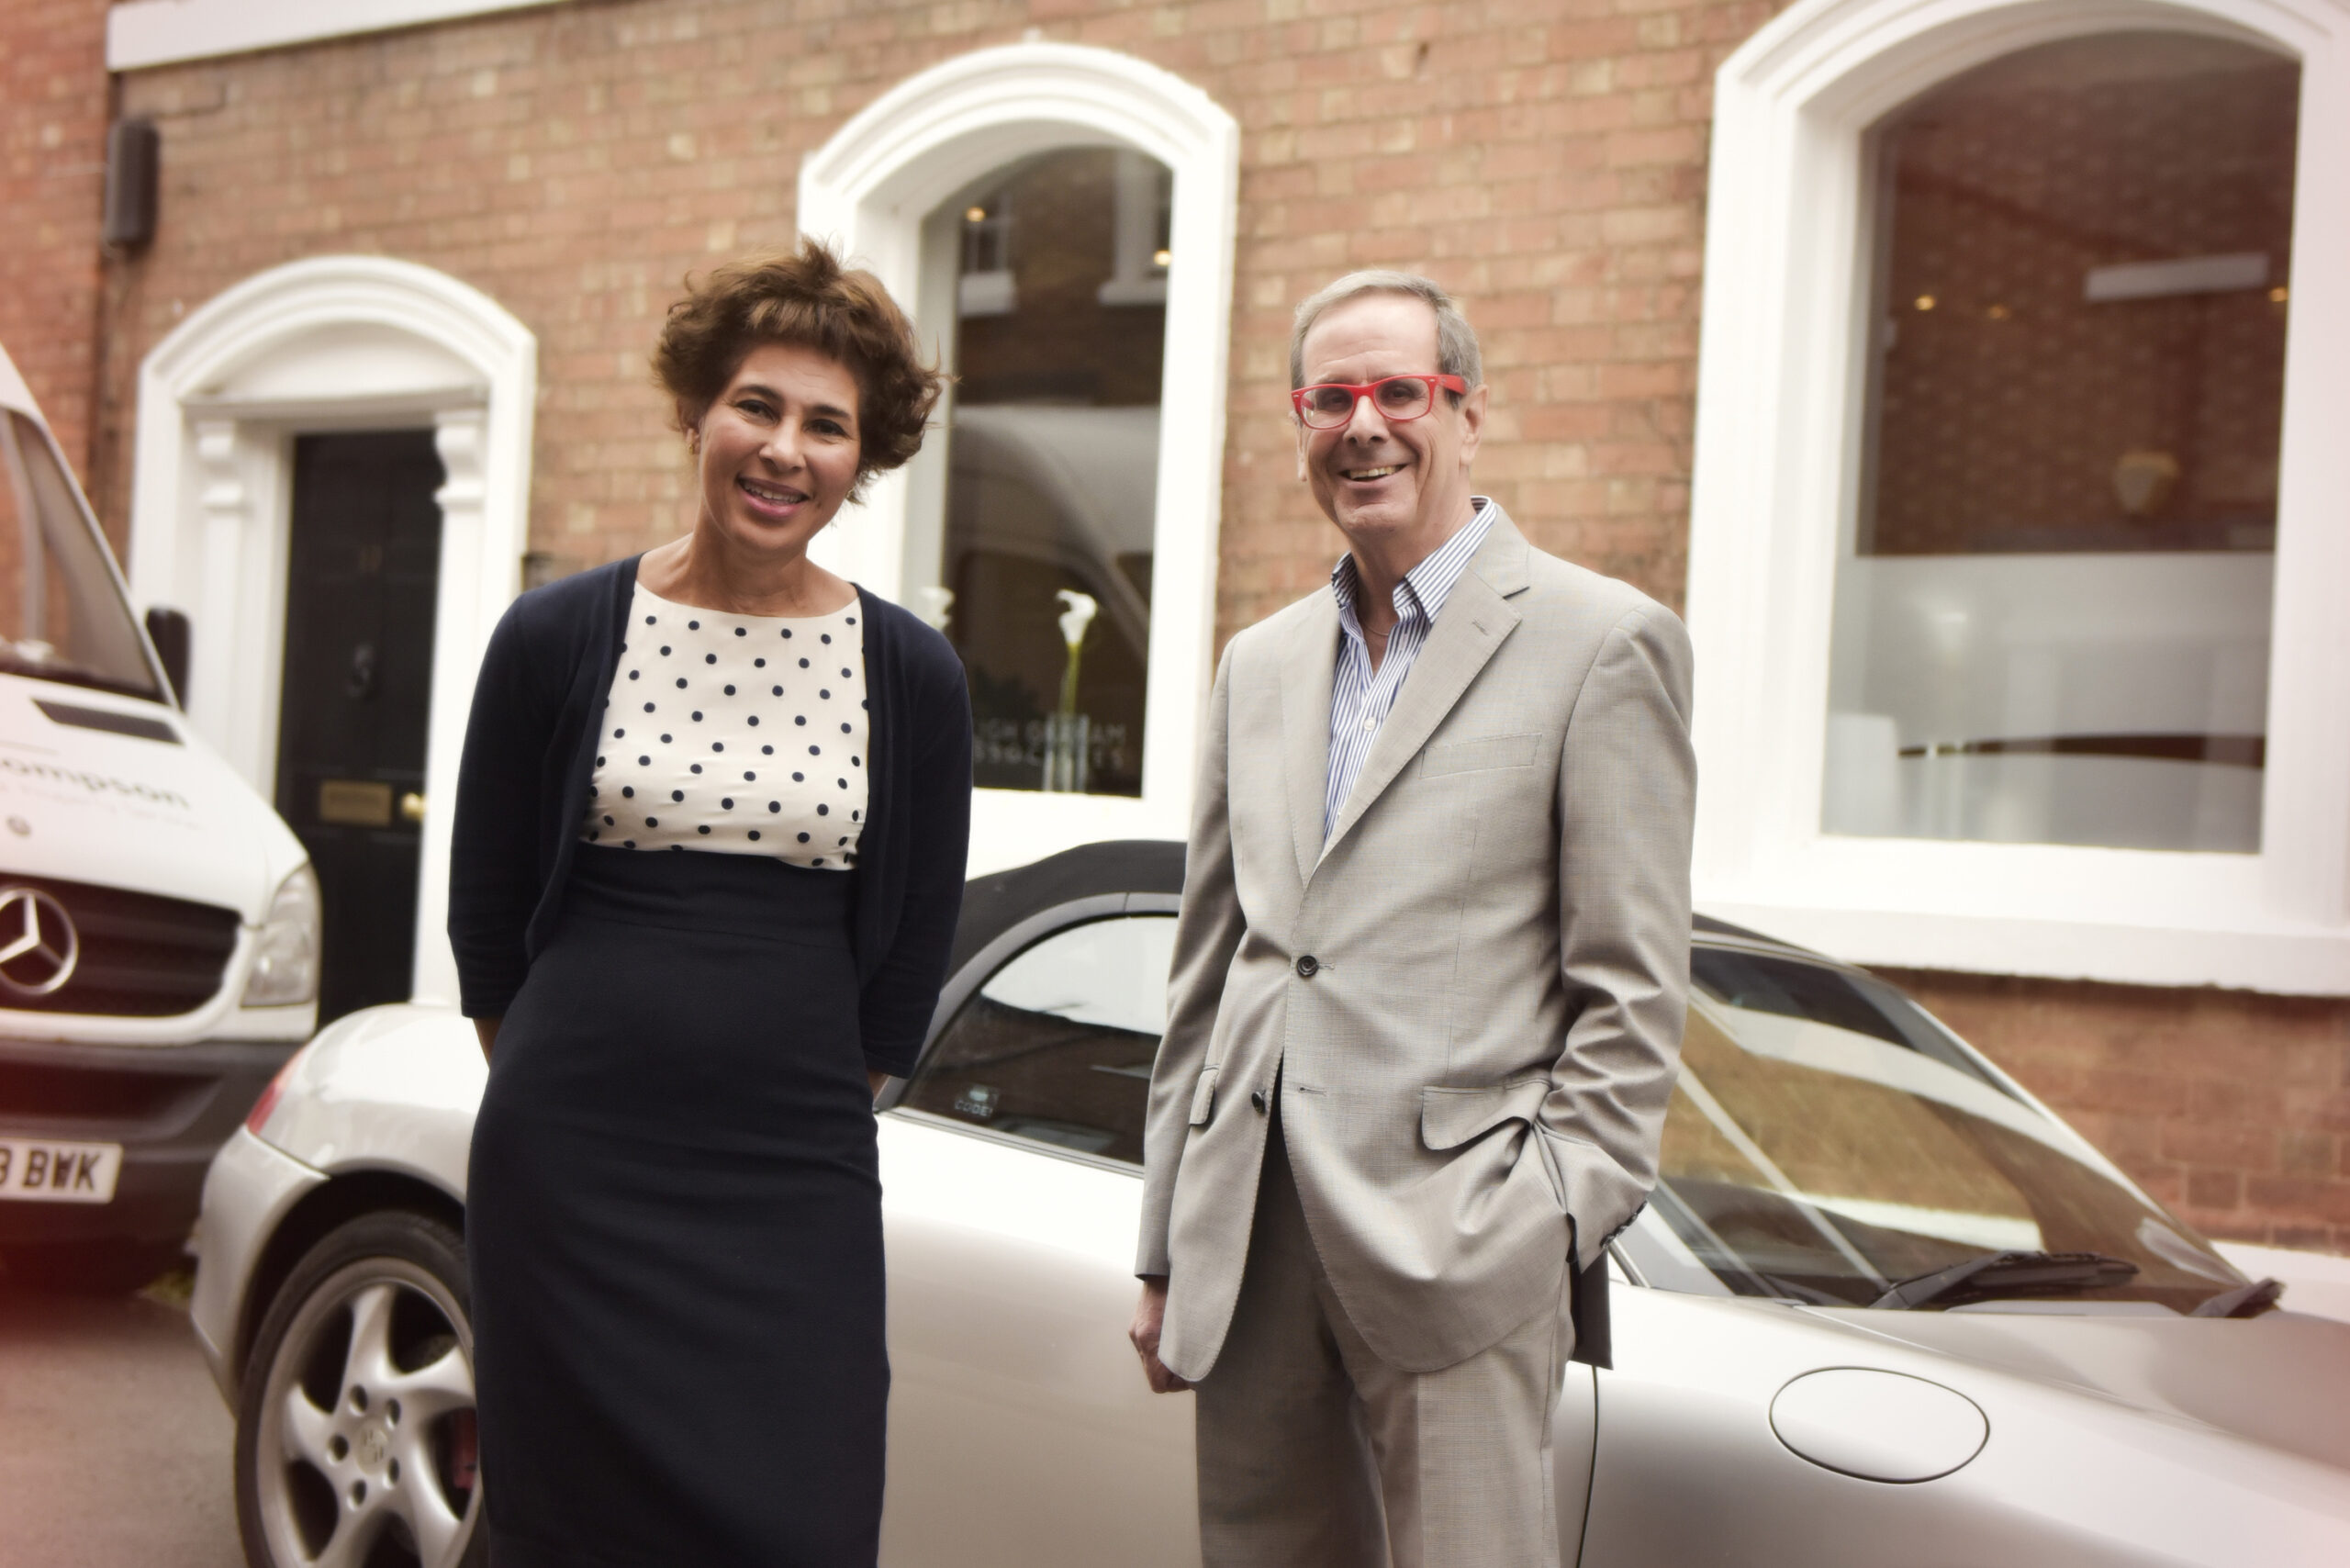 Air conditioning specialist enjoys fivefold growth with help from Leigh Graham Associates